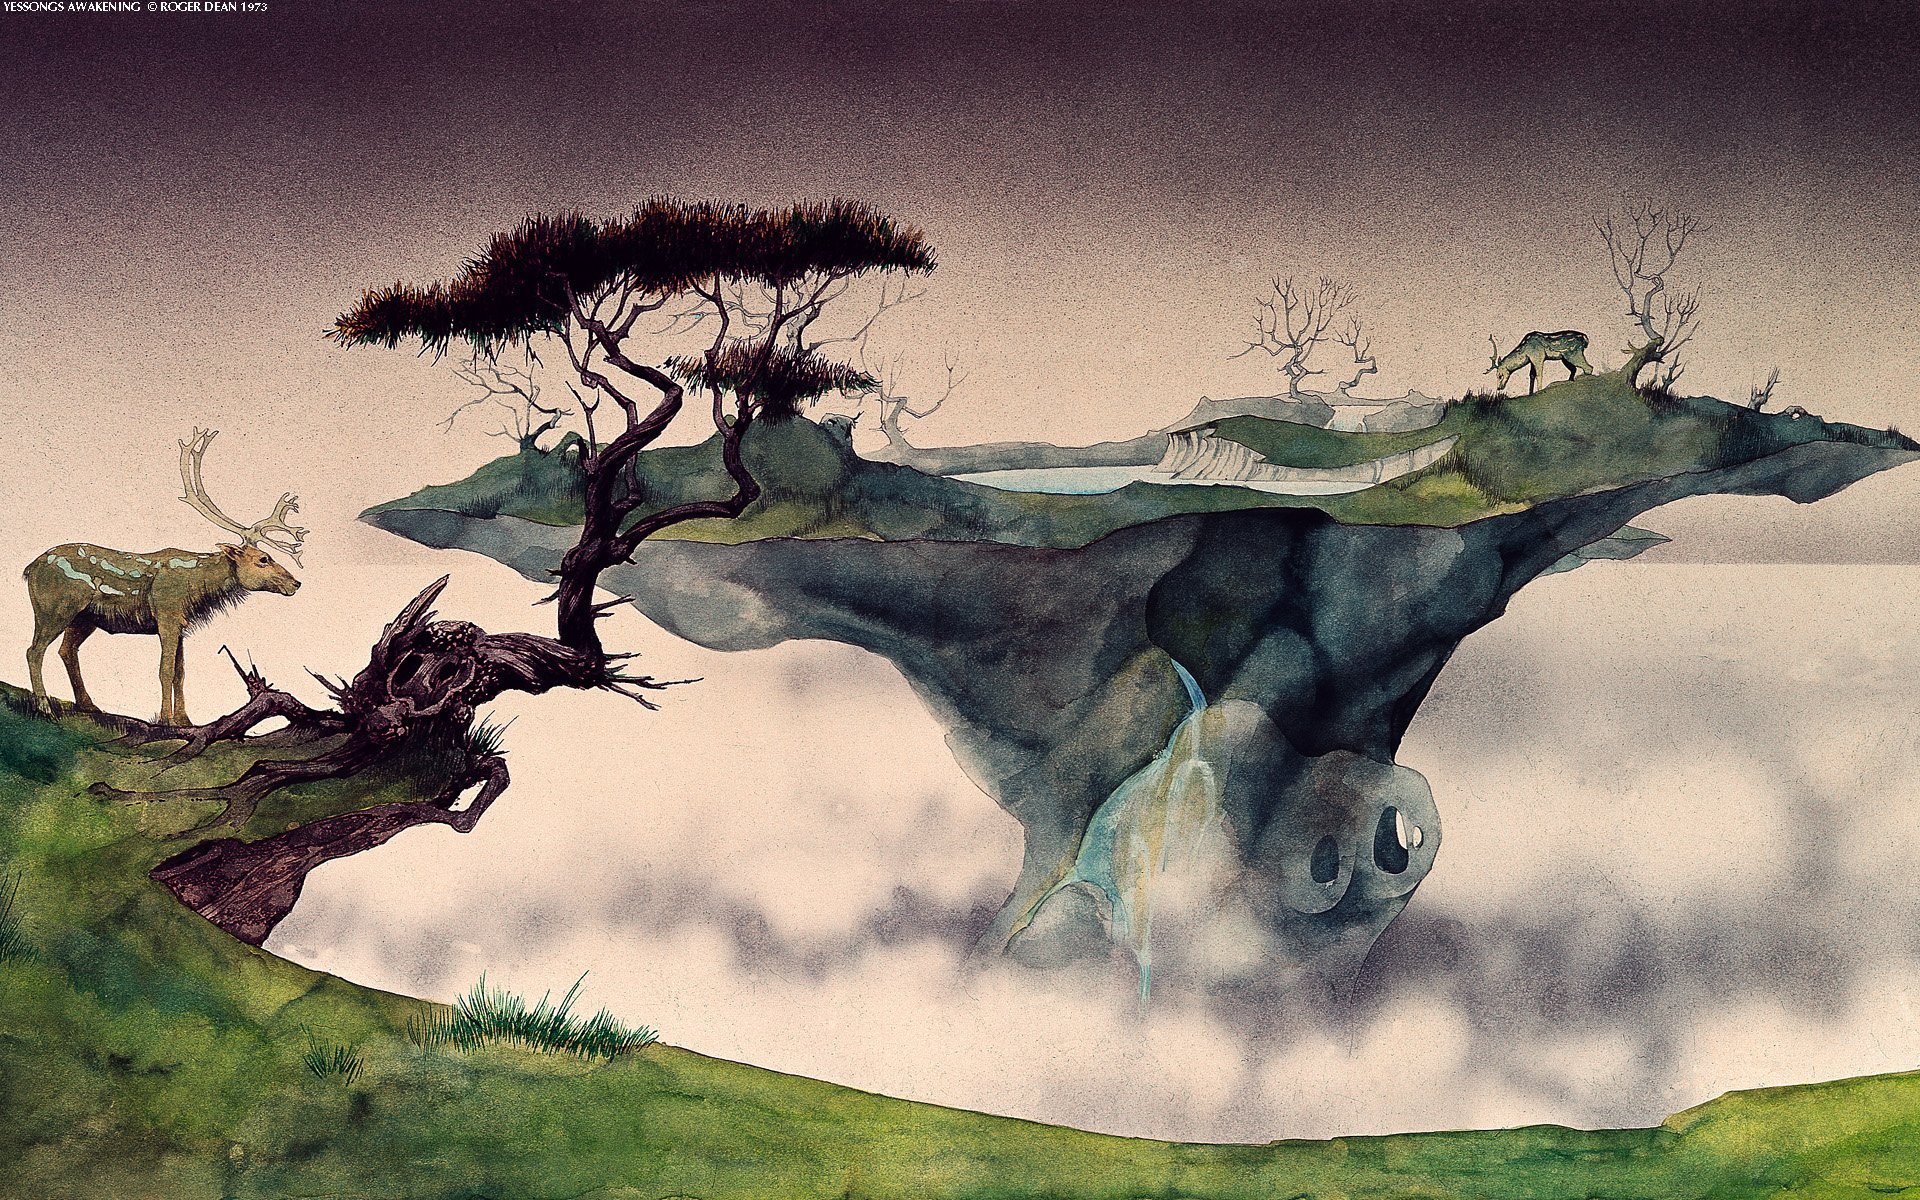 48 Roger Dean Wallpaper For Iphone On Wallpapersafari